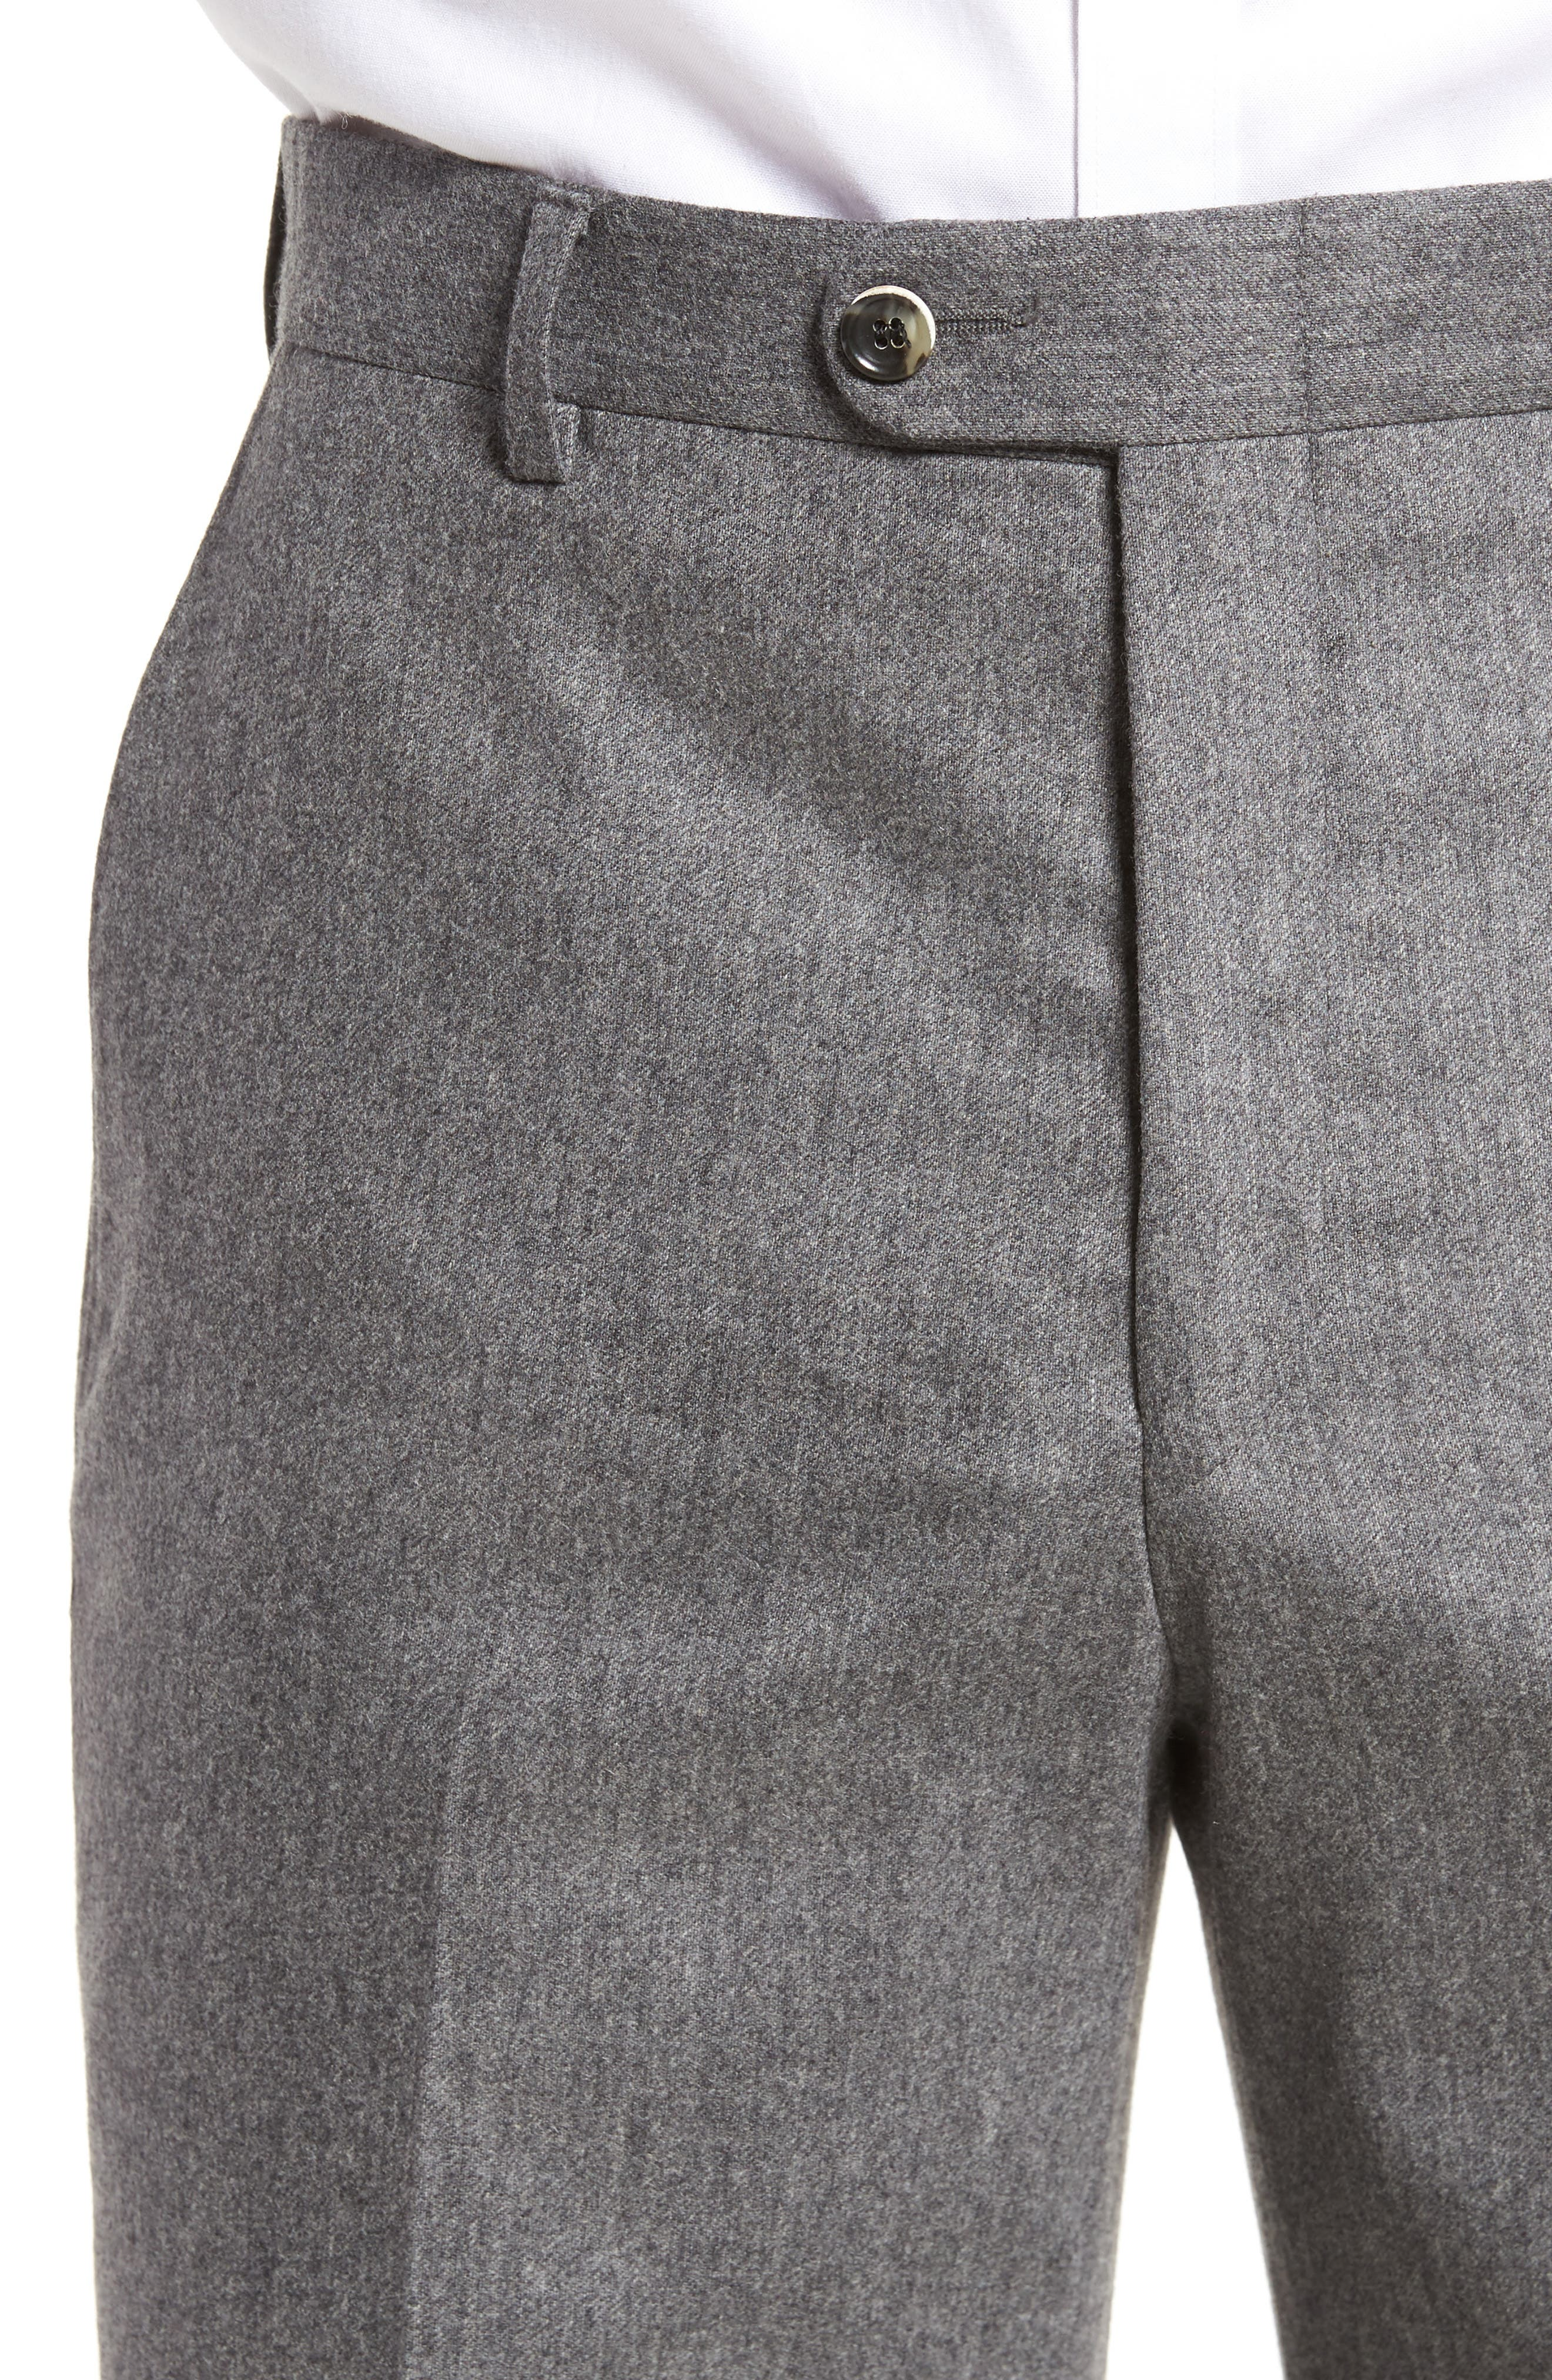 Classic B Fit Flat Front Solid Wool Blend Trousers,                             Alternate thumbnail 5, color,                             030